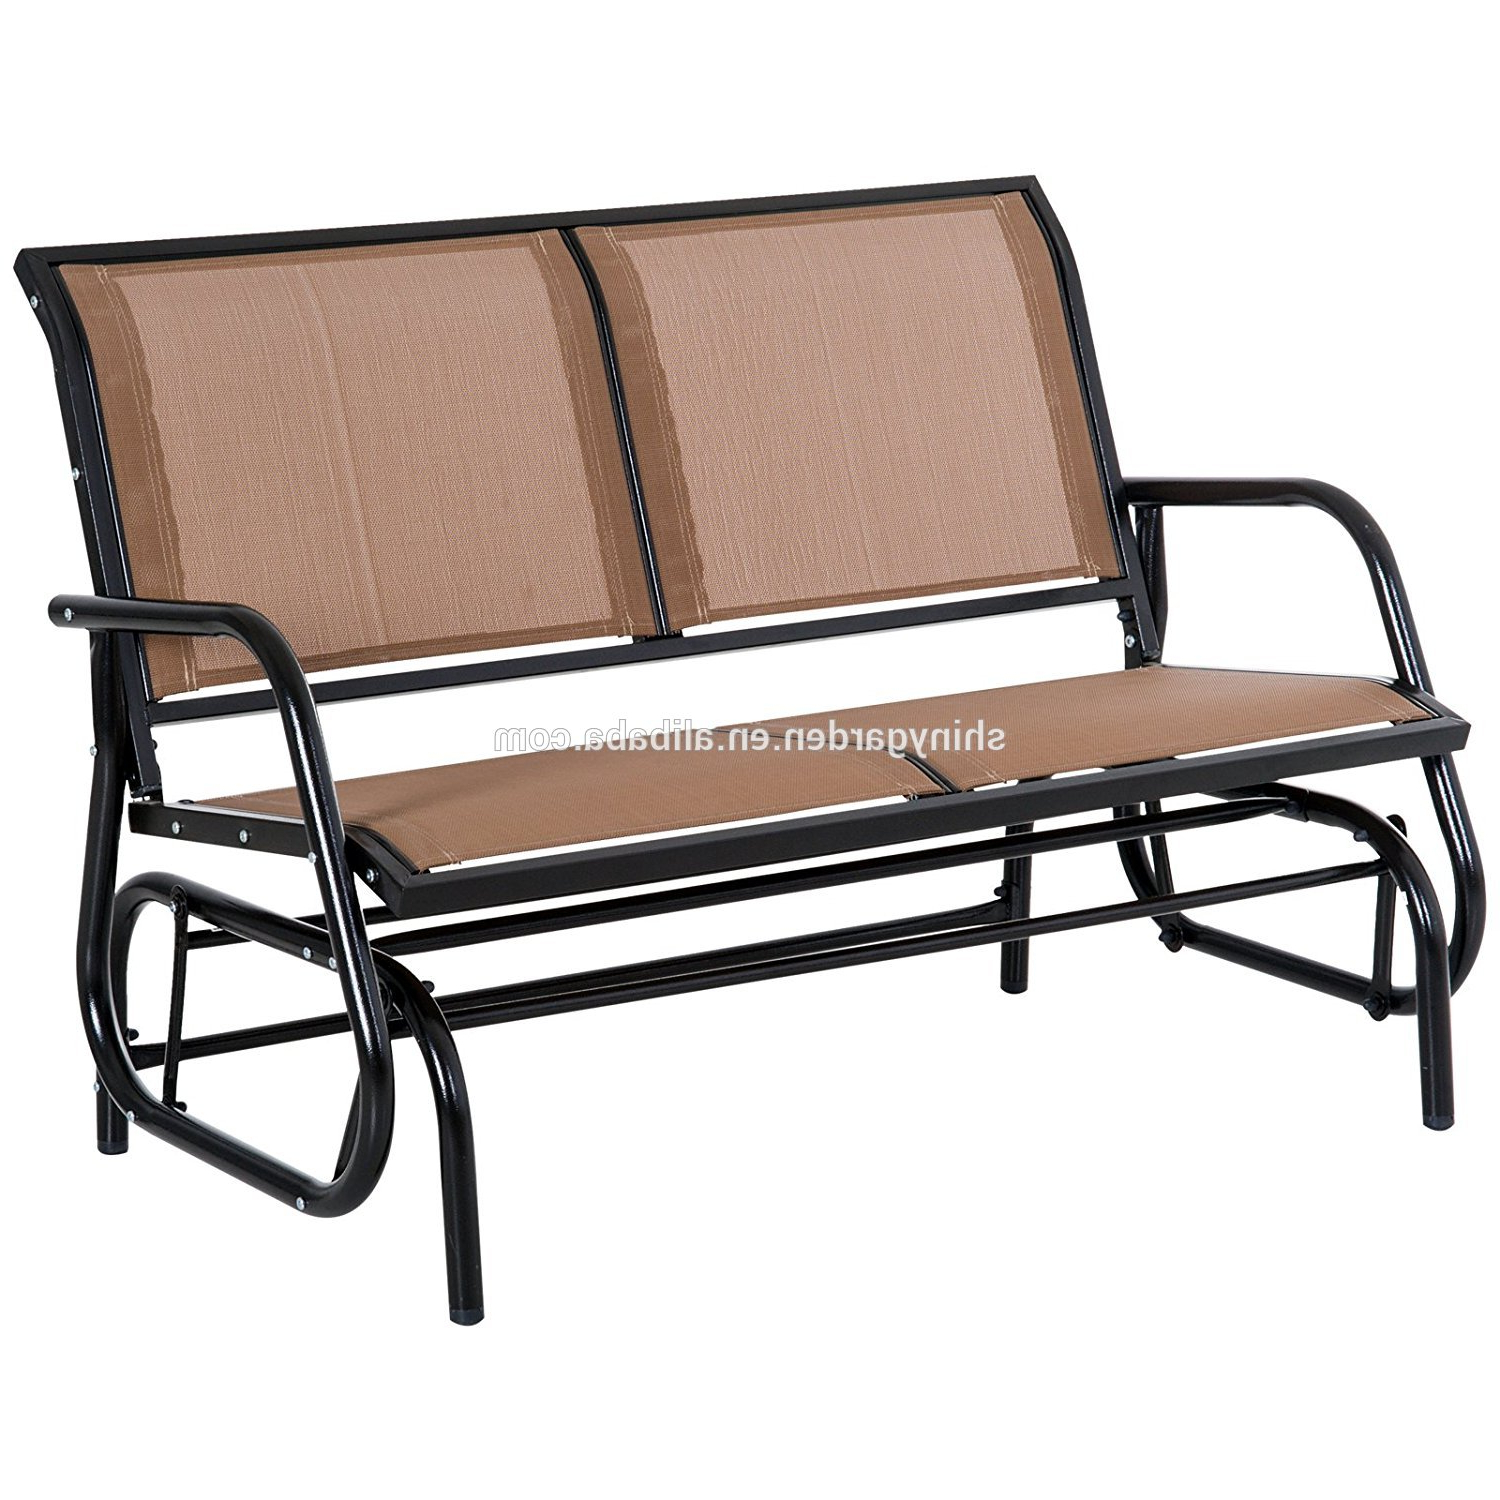 Popular Steel Patio Swing Glider Benches In Outdoor Swing Glider Chair,patio Bench For 2 Person,garden Rocking Seating – Buy Swing Glider Chair Product On Alibaba (View 25 of 30)